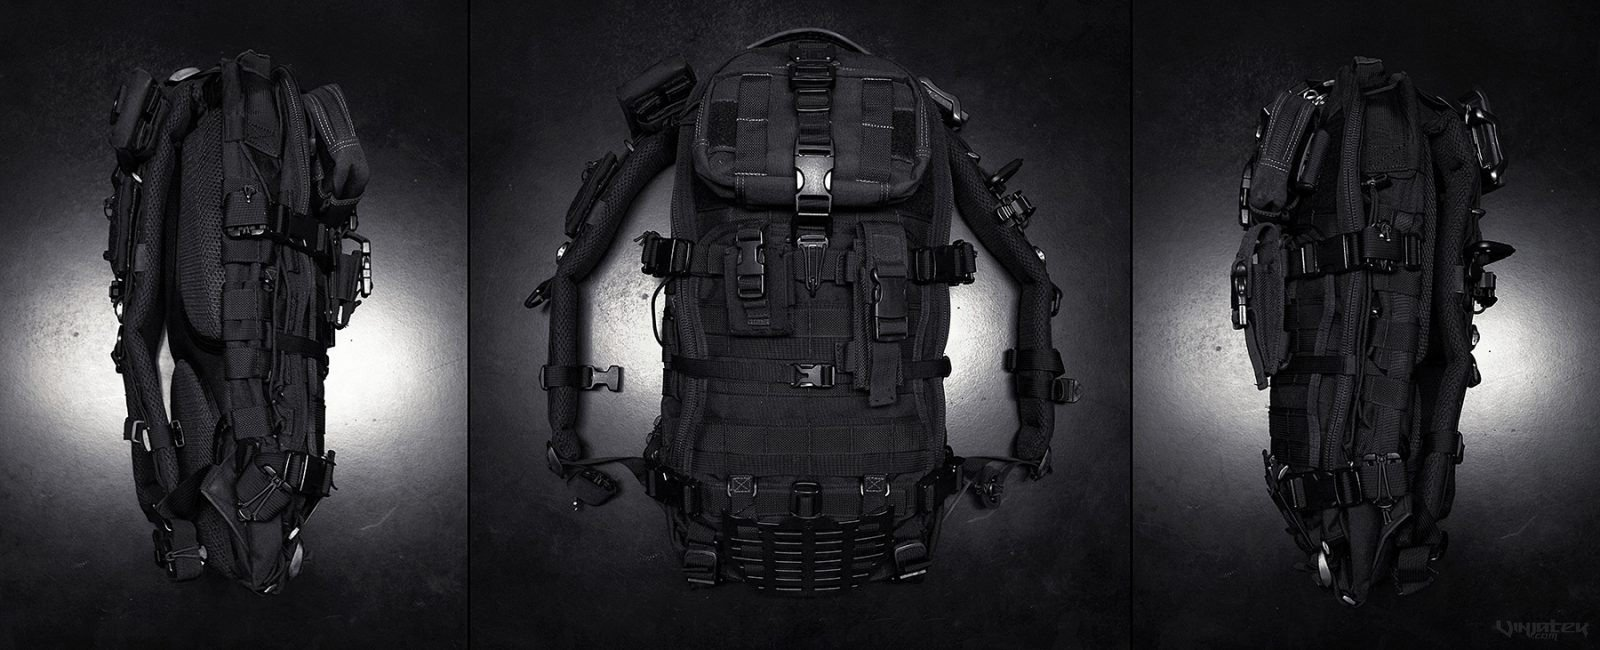 Triple Aught Design FAST Pack Litespeed Reengineered /// Vinjatek